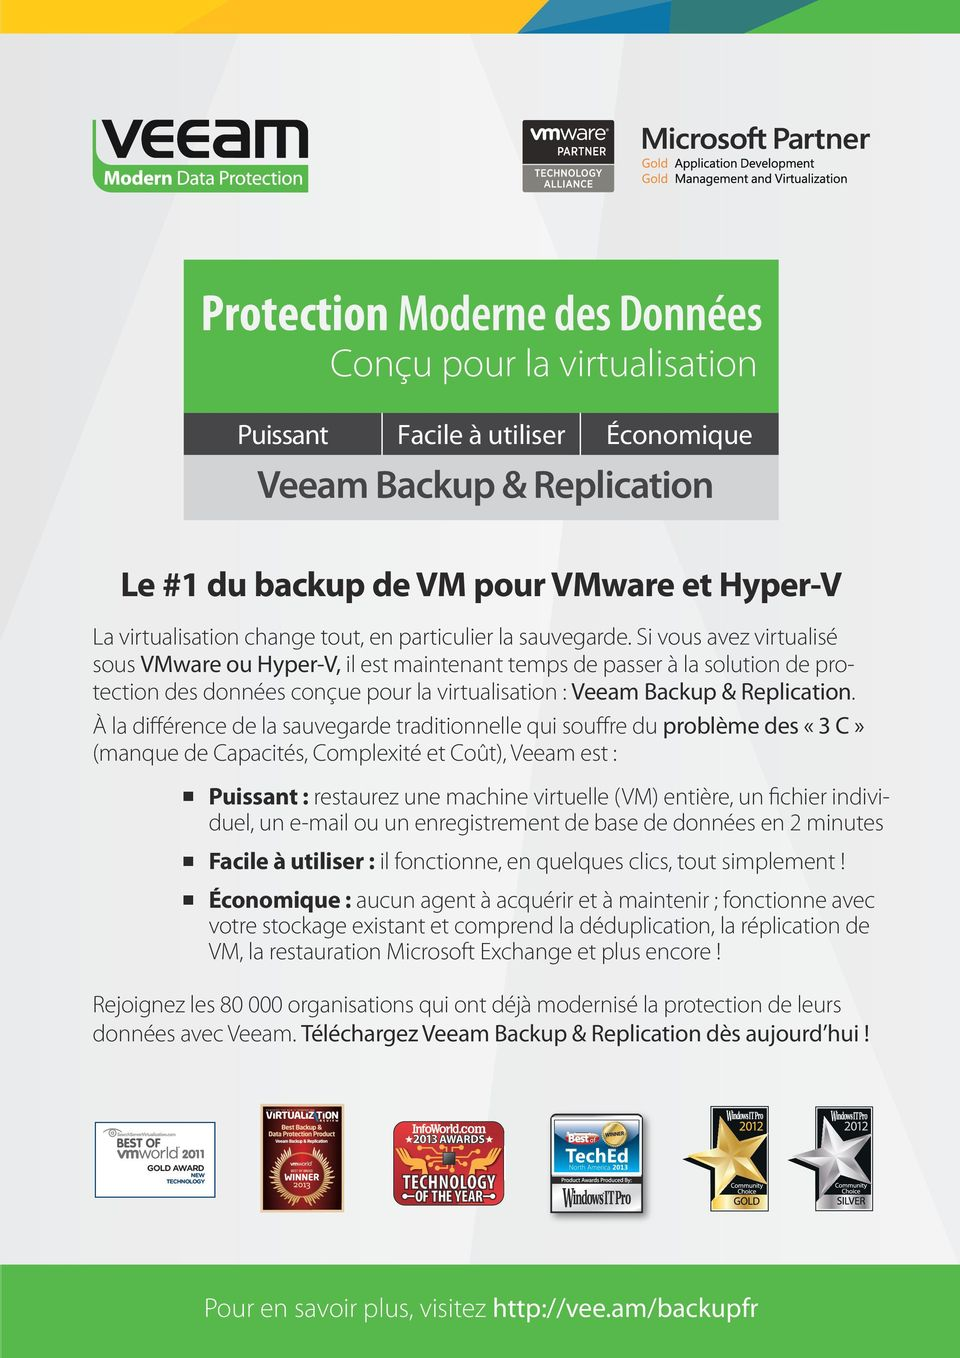 Backup de for VM VMware pour VMware and Hyper-V et Hyper-V Virtualization La virtualisation changes everything tout, en particulier especially la sauvegarde. backup.